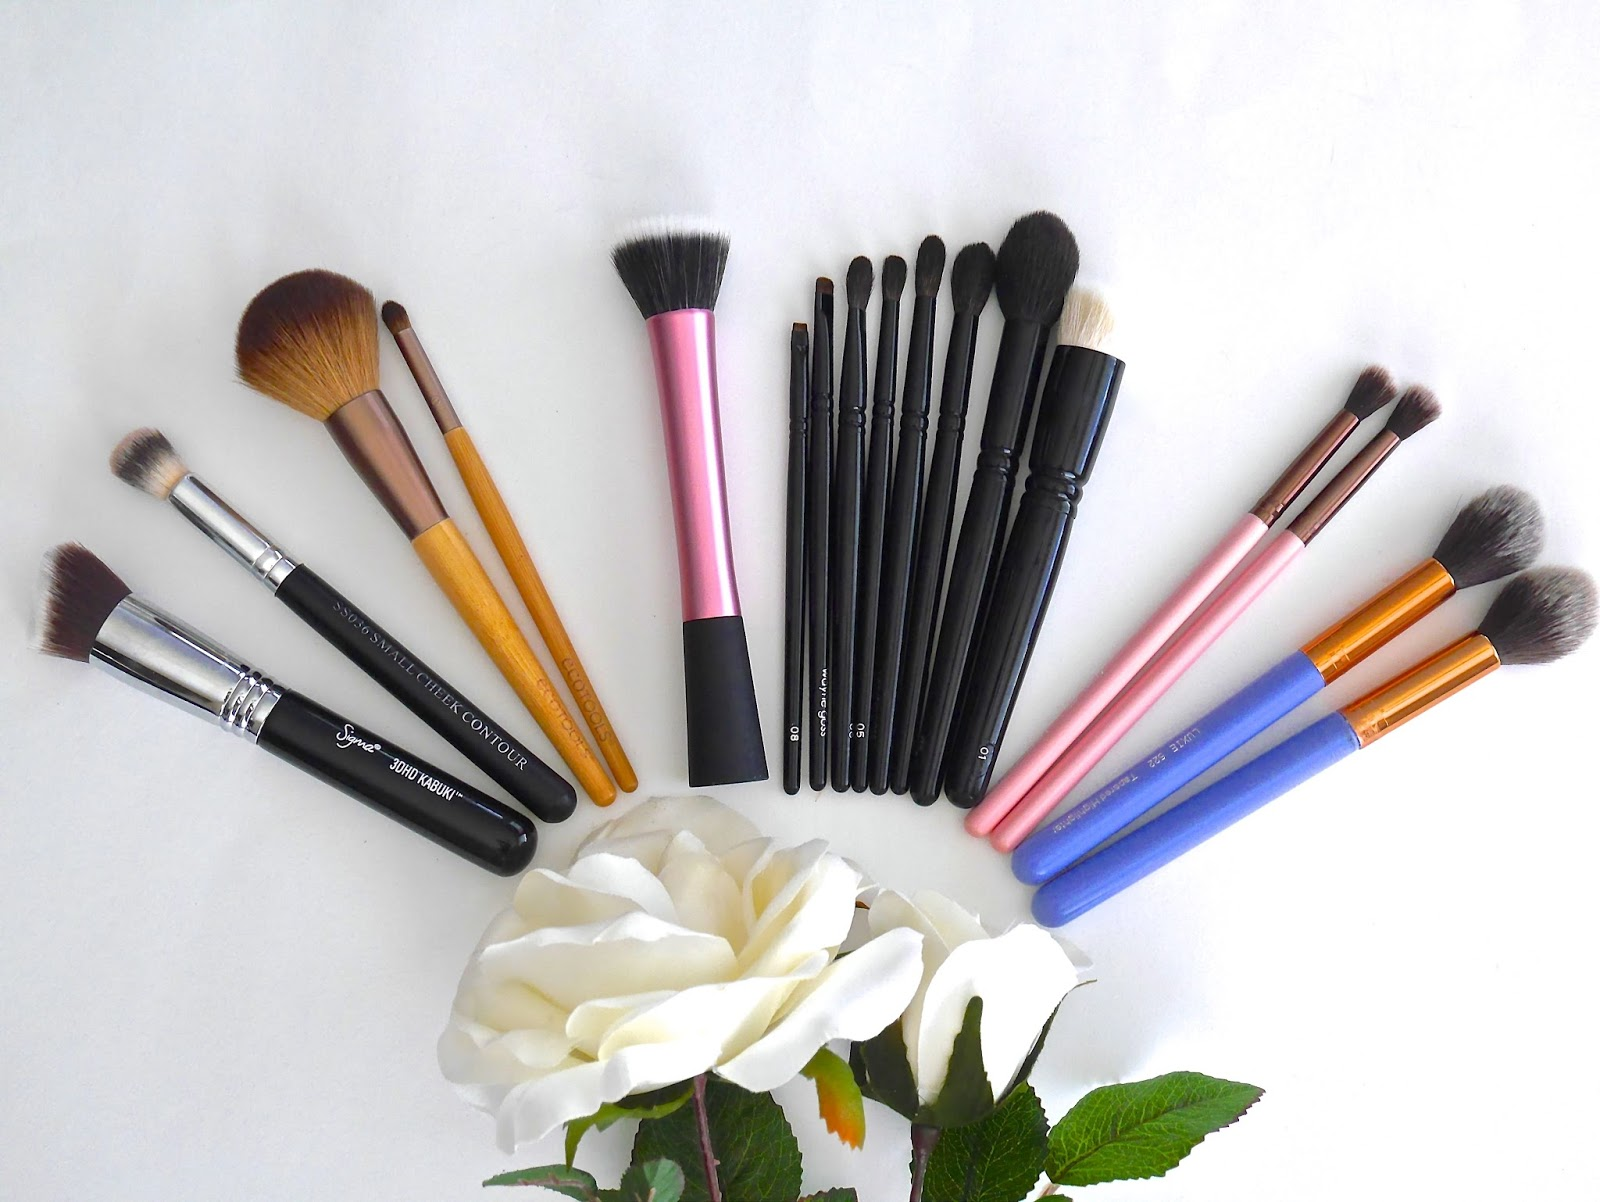 makeup brushes, high end, japanese artisan makeup brushes, makeup brushes, cruelty free, vegan, eco-friendly, budget friendly